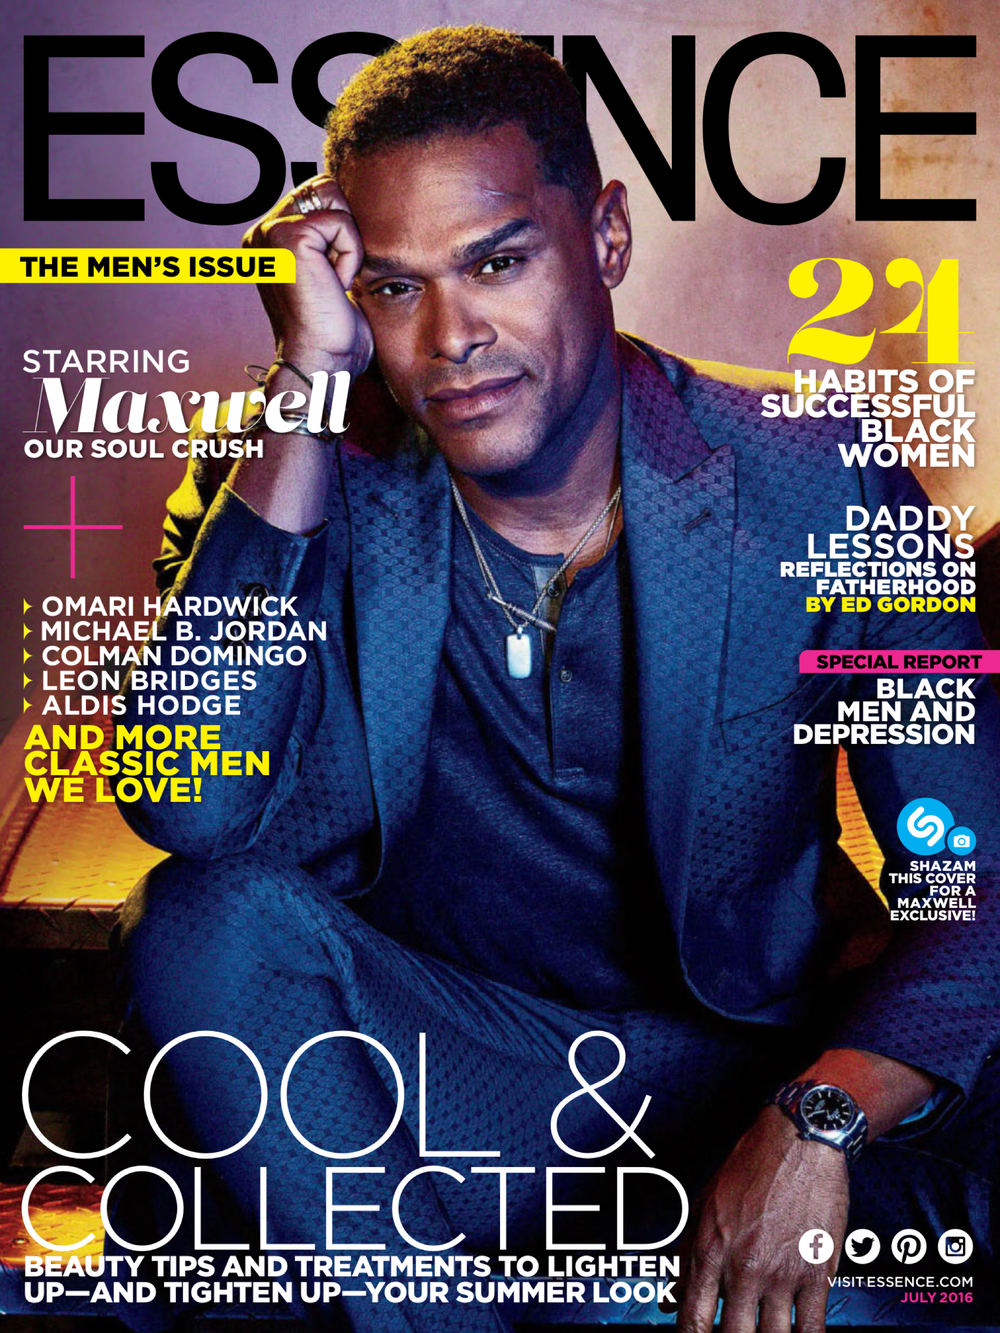 Essence Magazine July 2016 Classic Men Issue Cover | Colman Domingo